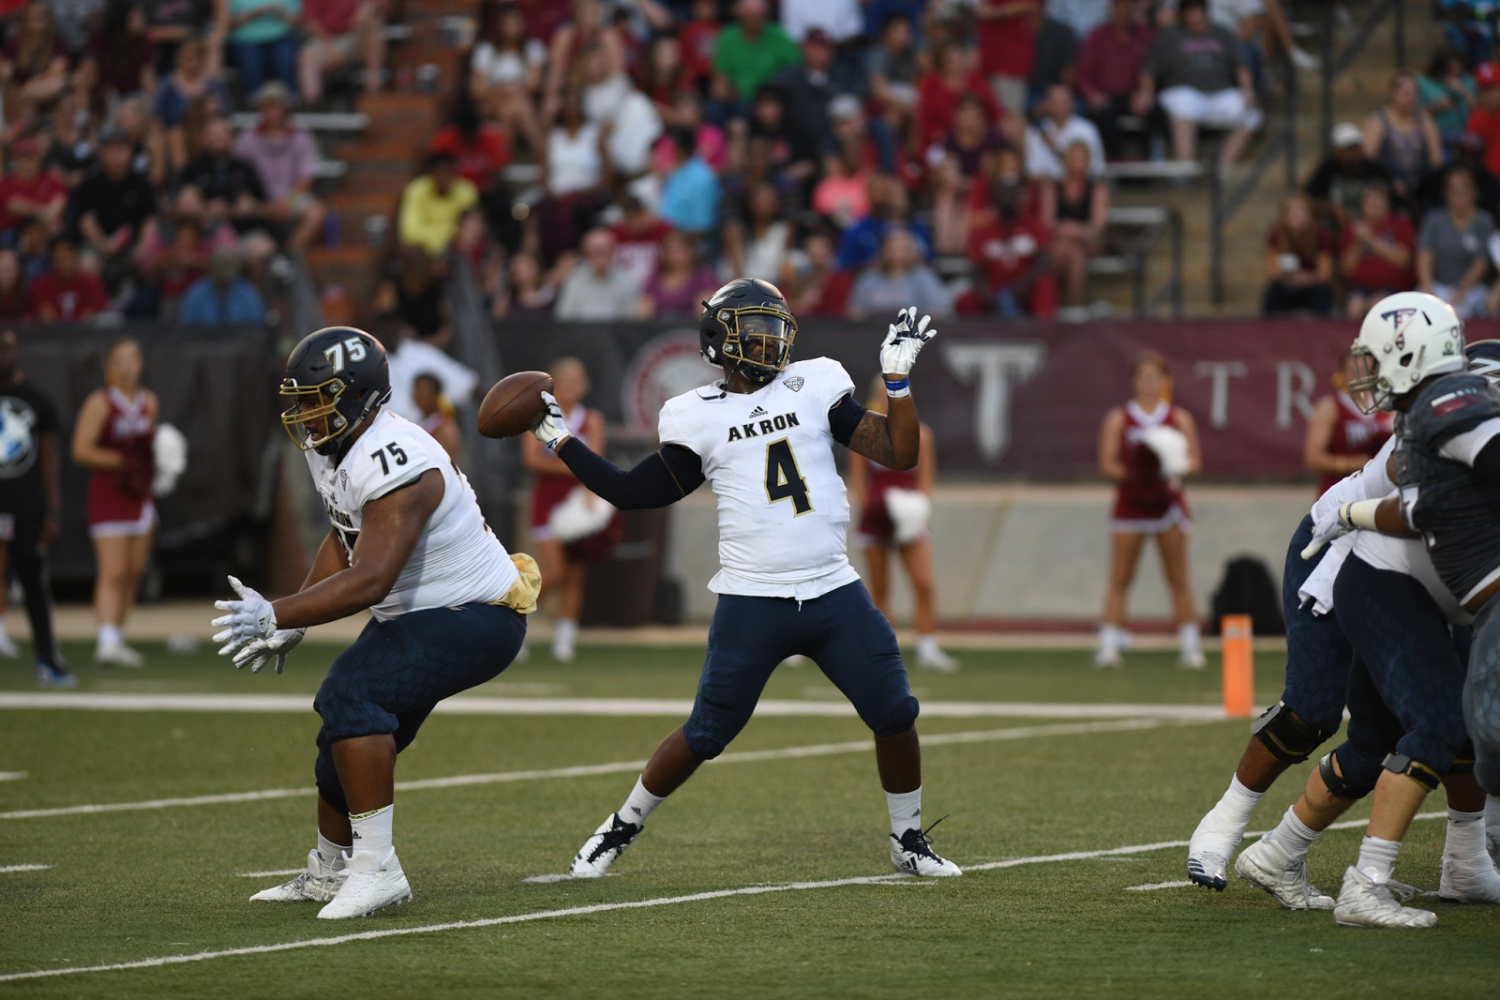 Thomas Woodson looks to find an open receiver during the Zips' game vs. Troy on Saturday. (Photo courtesy of Akron Zips Football)